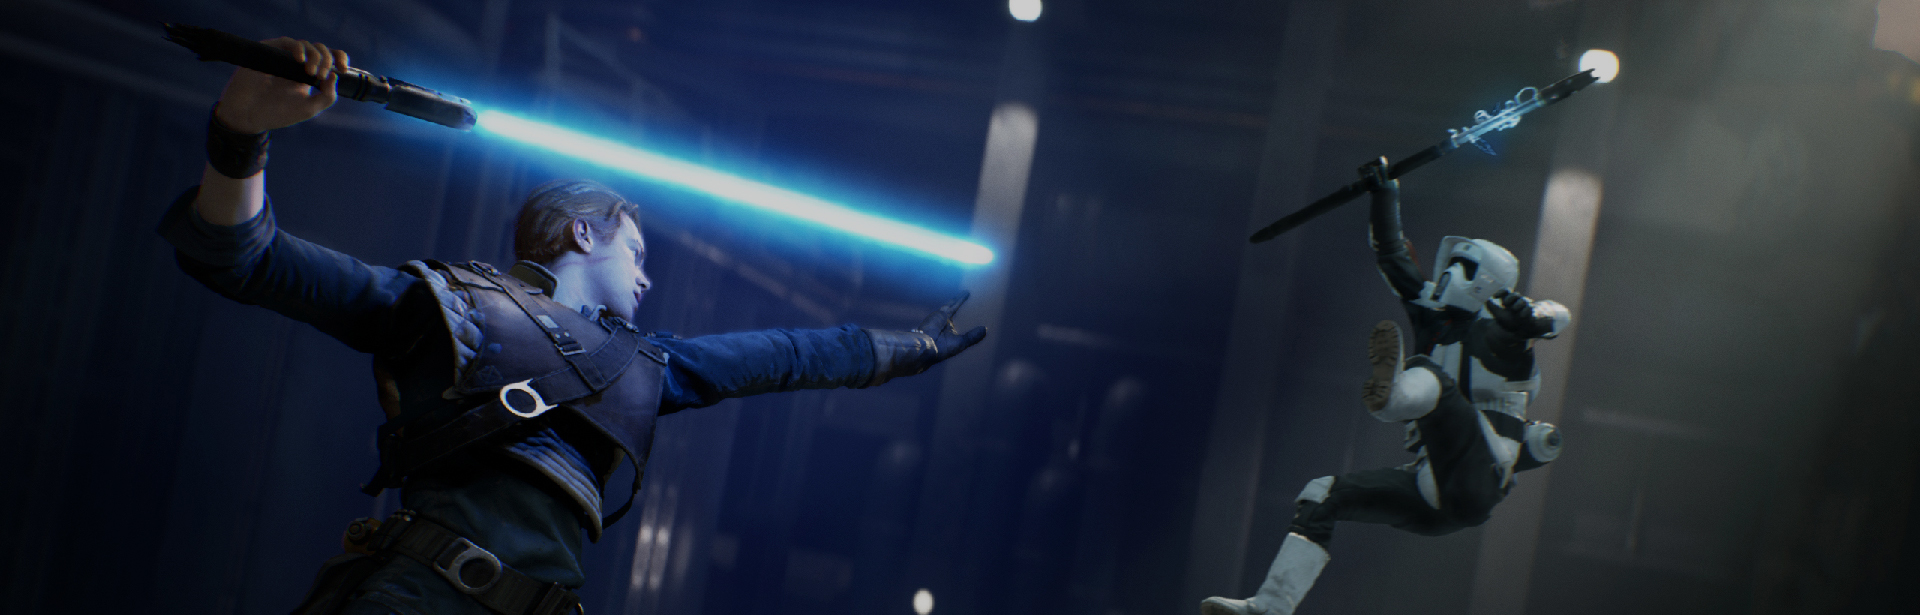 Star Wars Jedi: Fallen Order Game Guide header